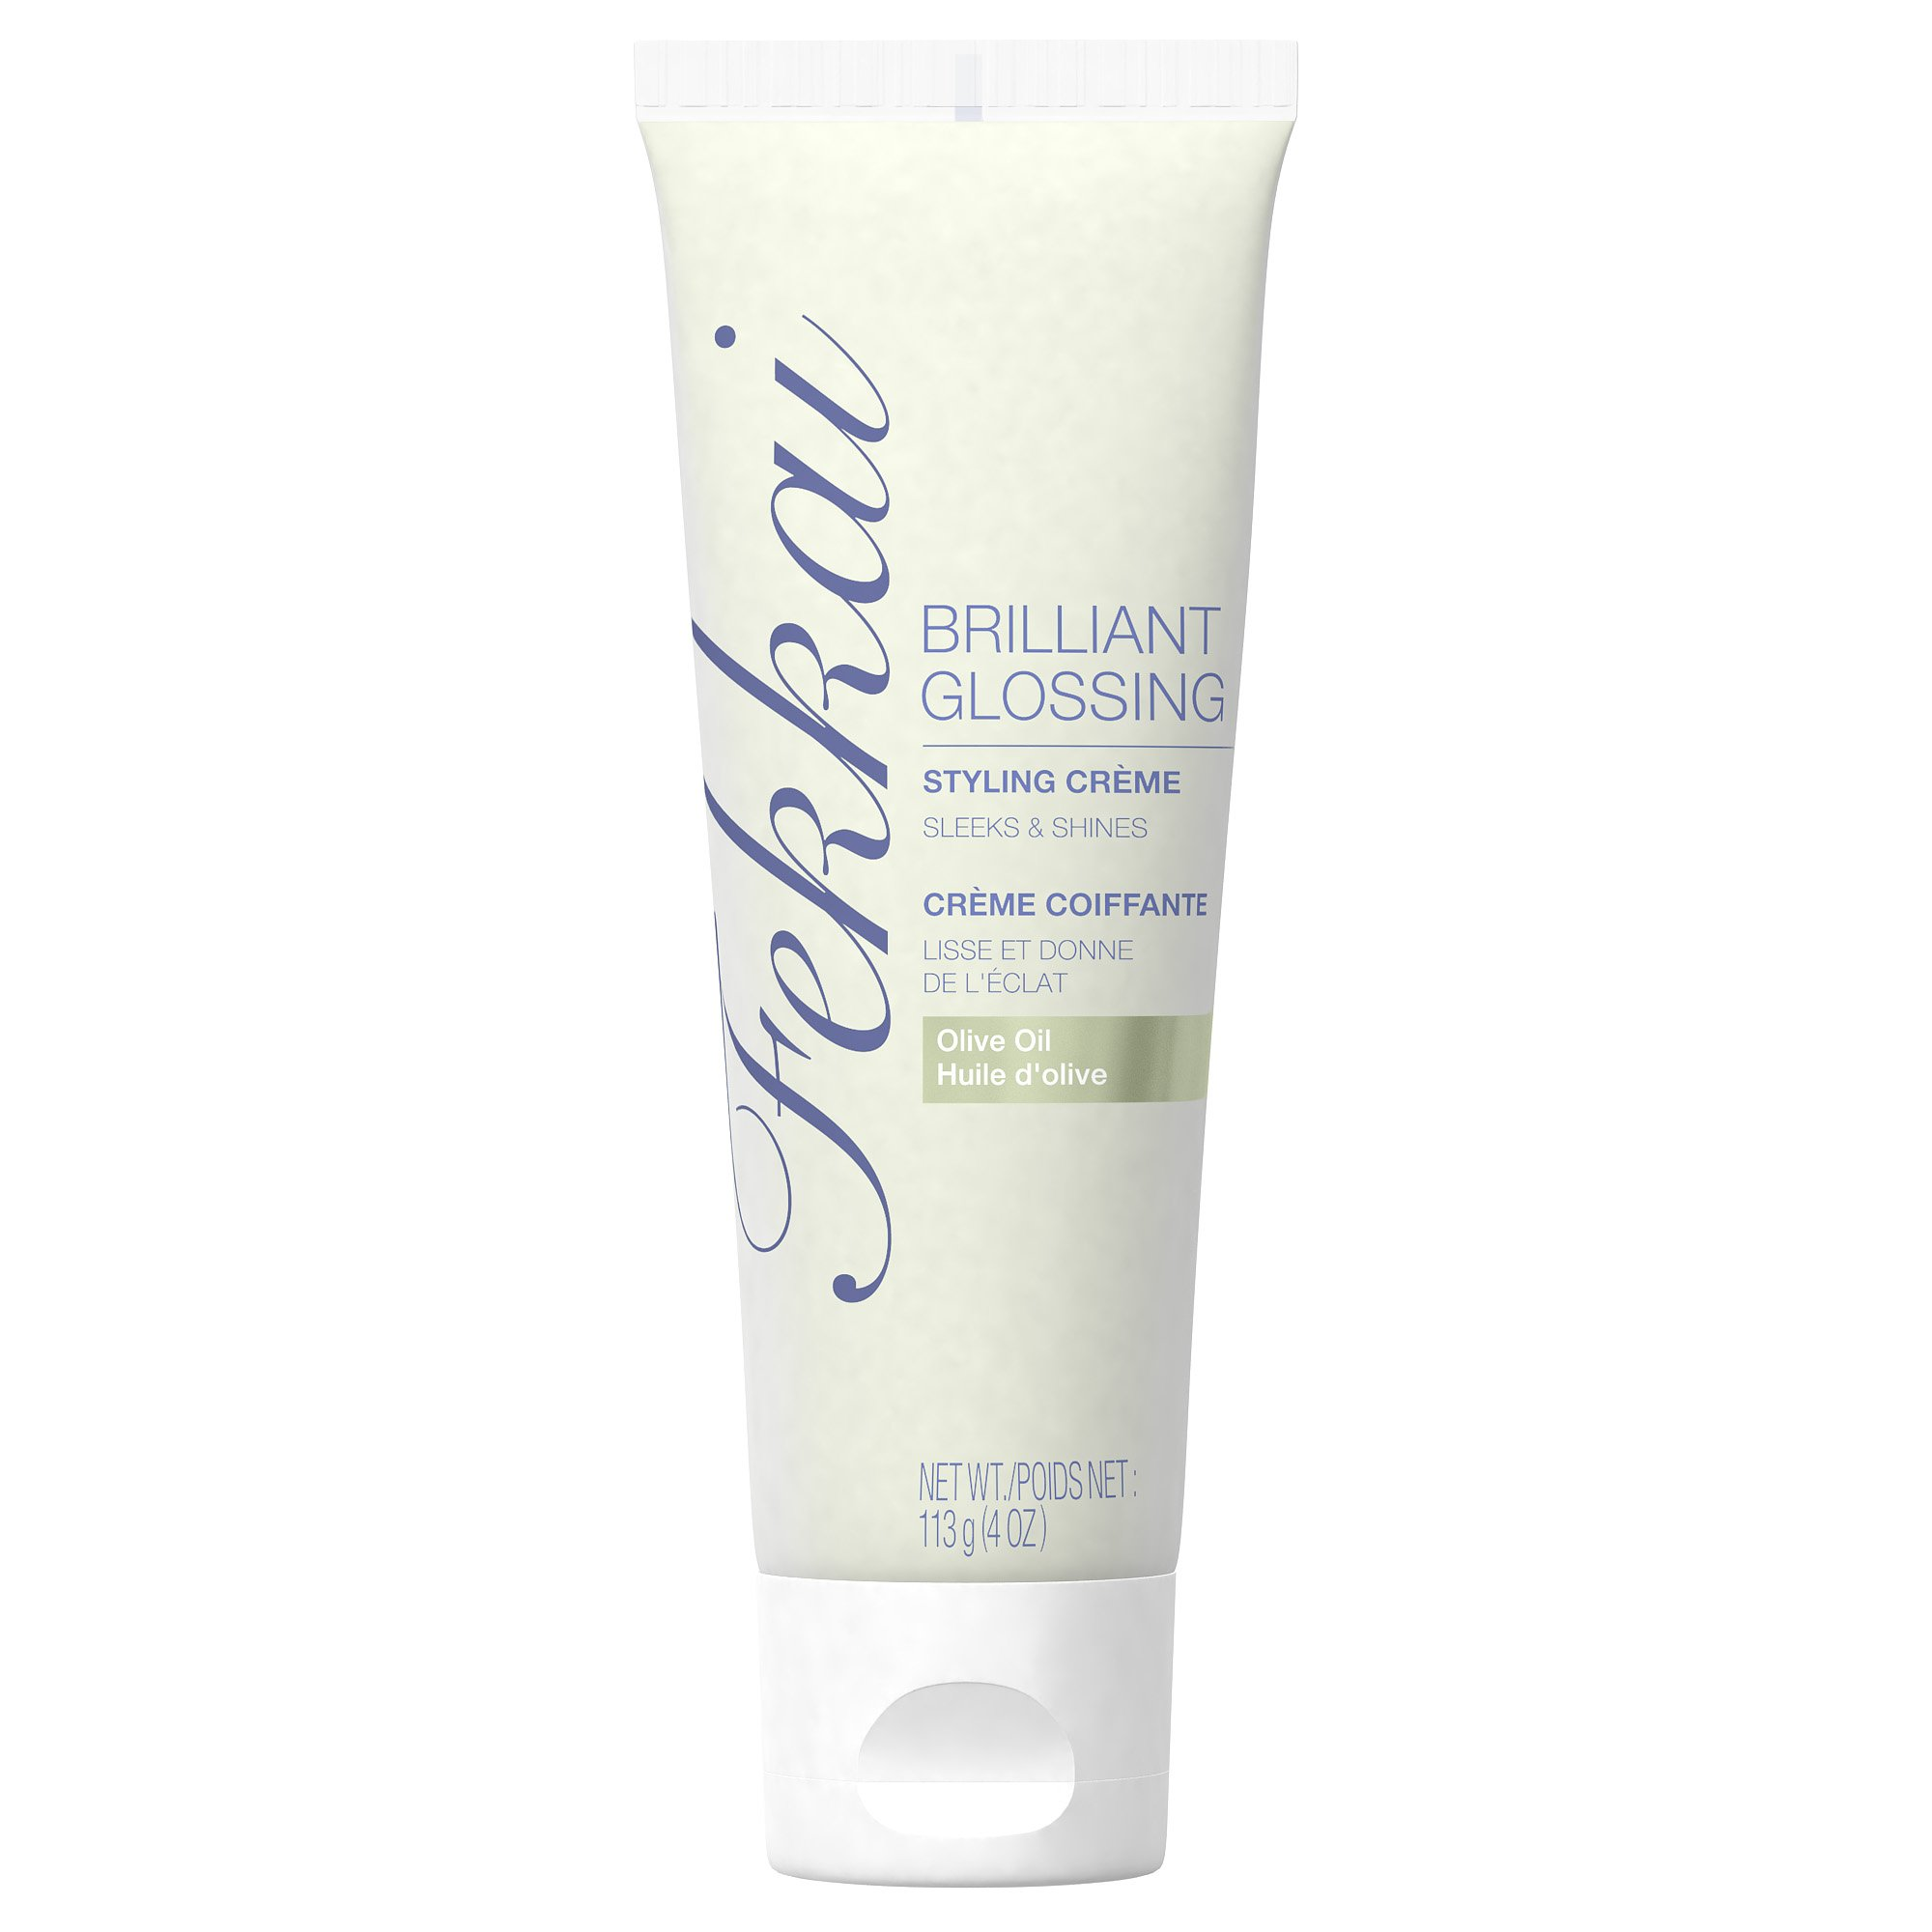 Fekkai Brilliant Glossing Crme 4 Oz, by Fekkai